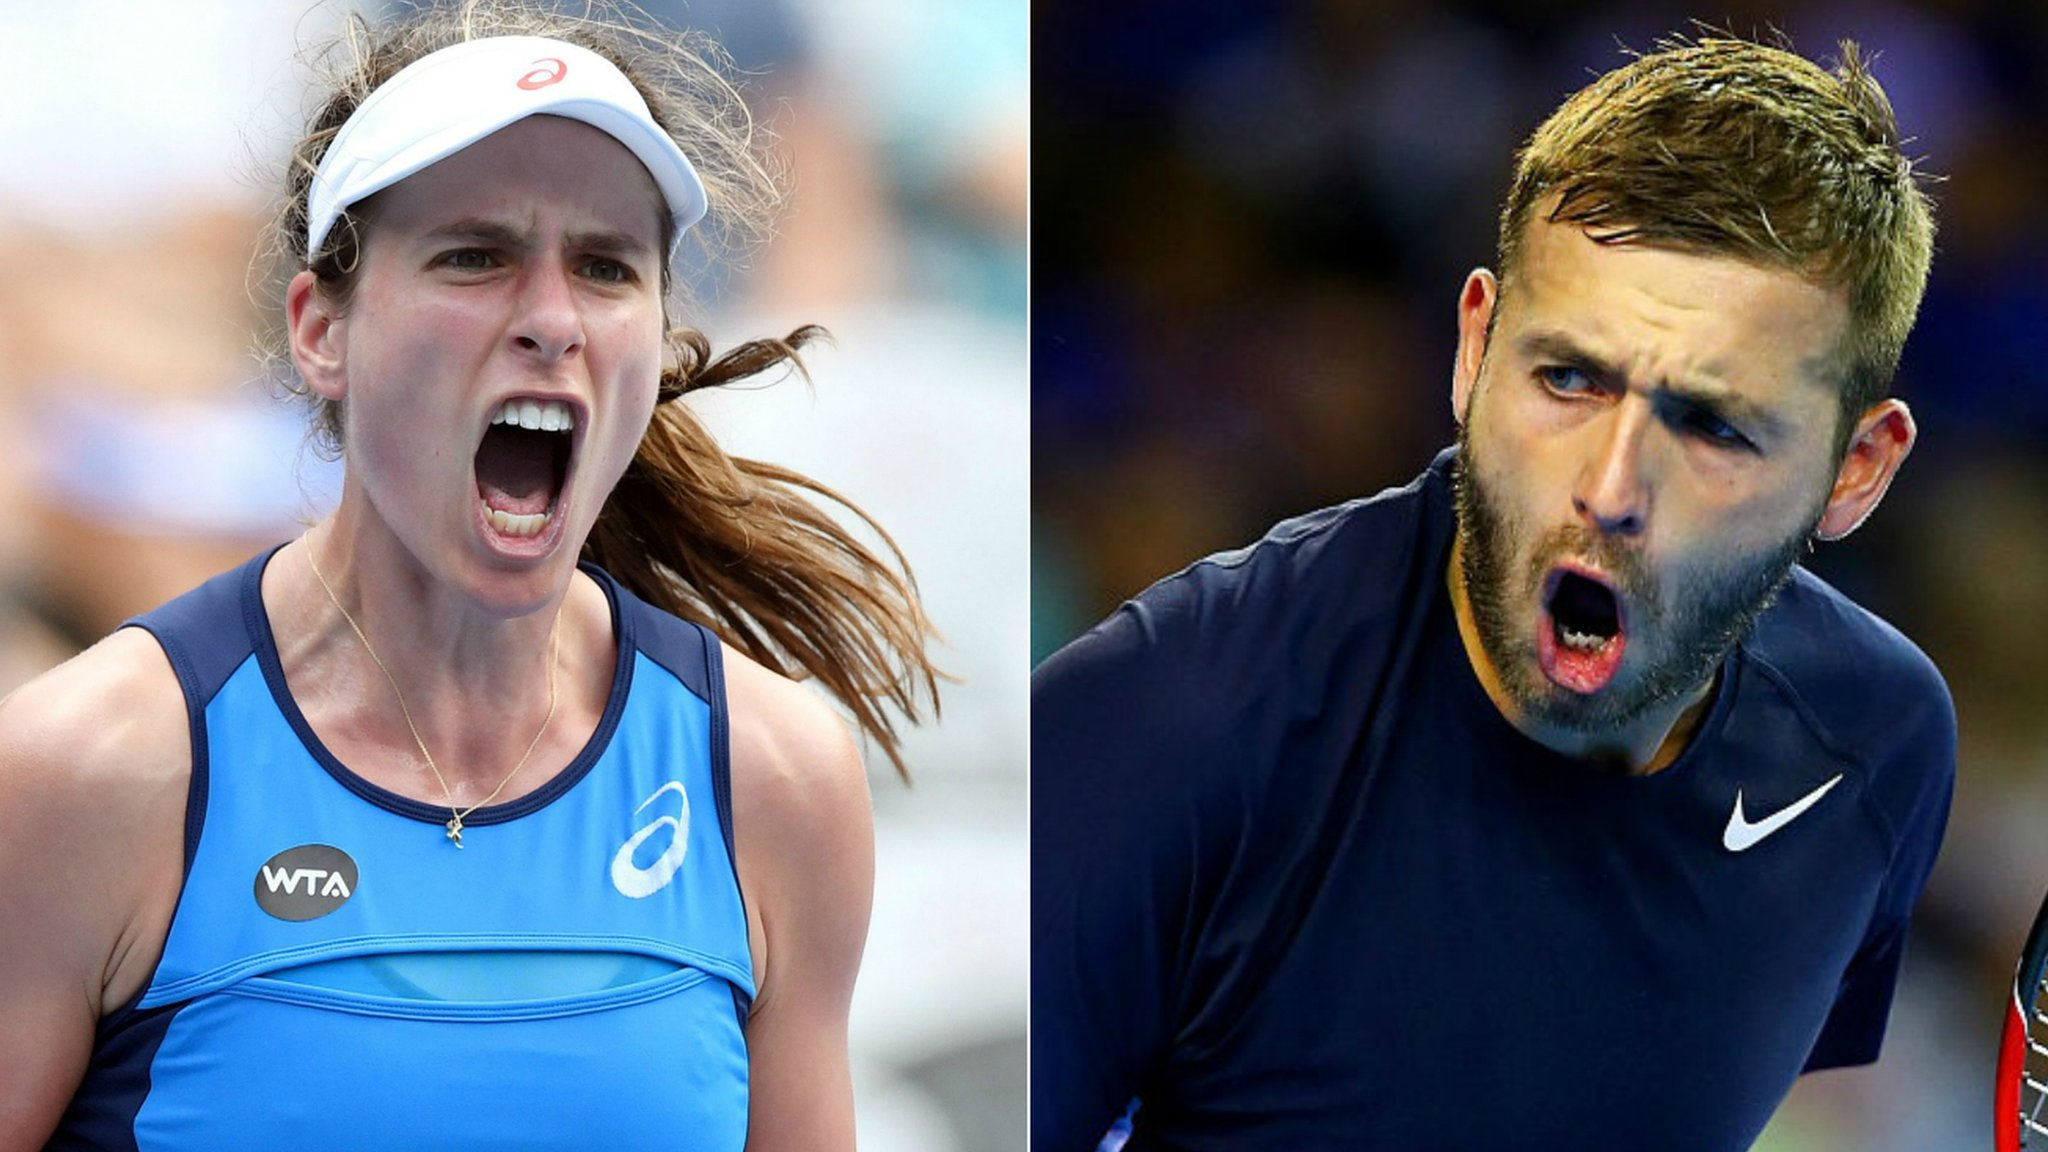 Sydney International: Johanna Konta into semi-finals & Dan Evans reaches third round